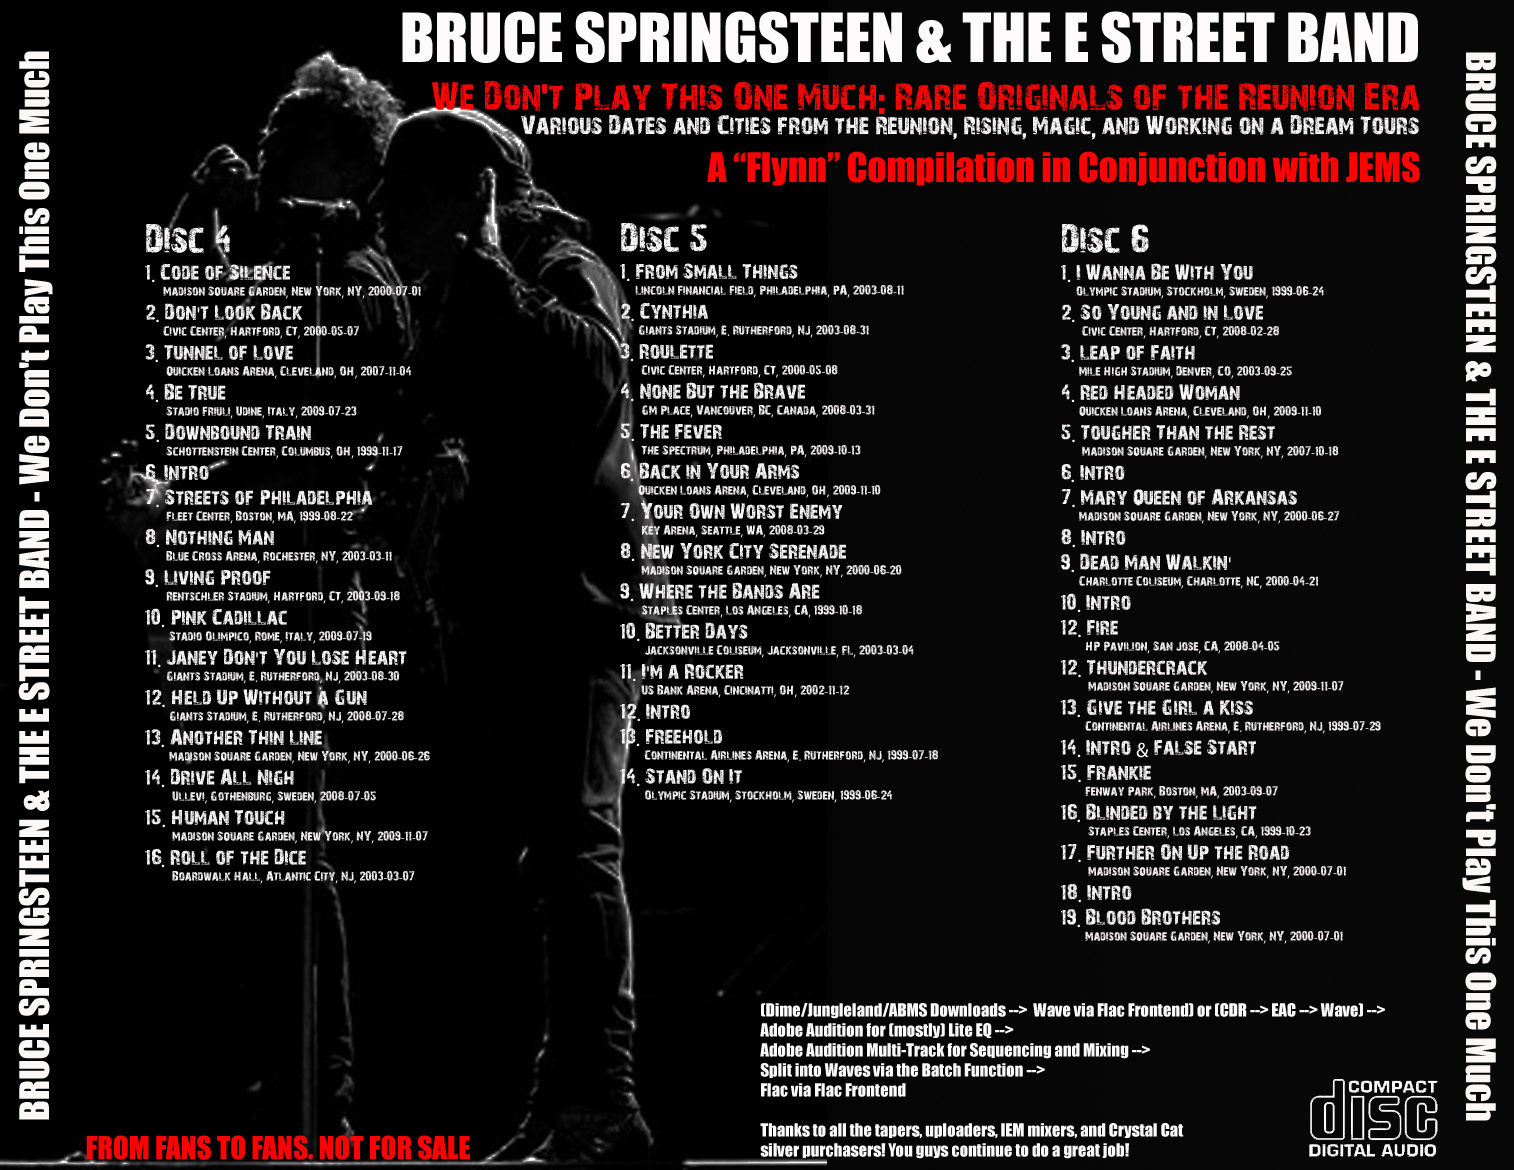 stand on it bruce springsteen cd